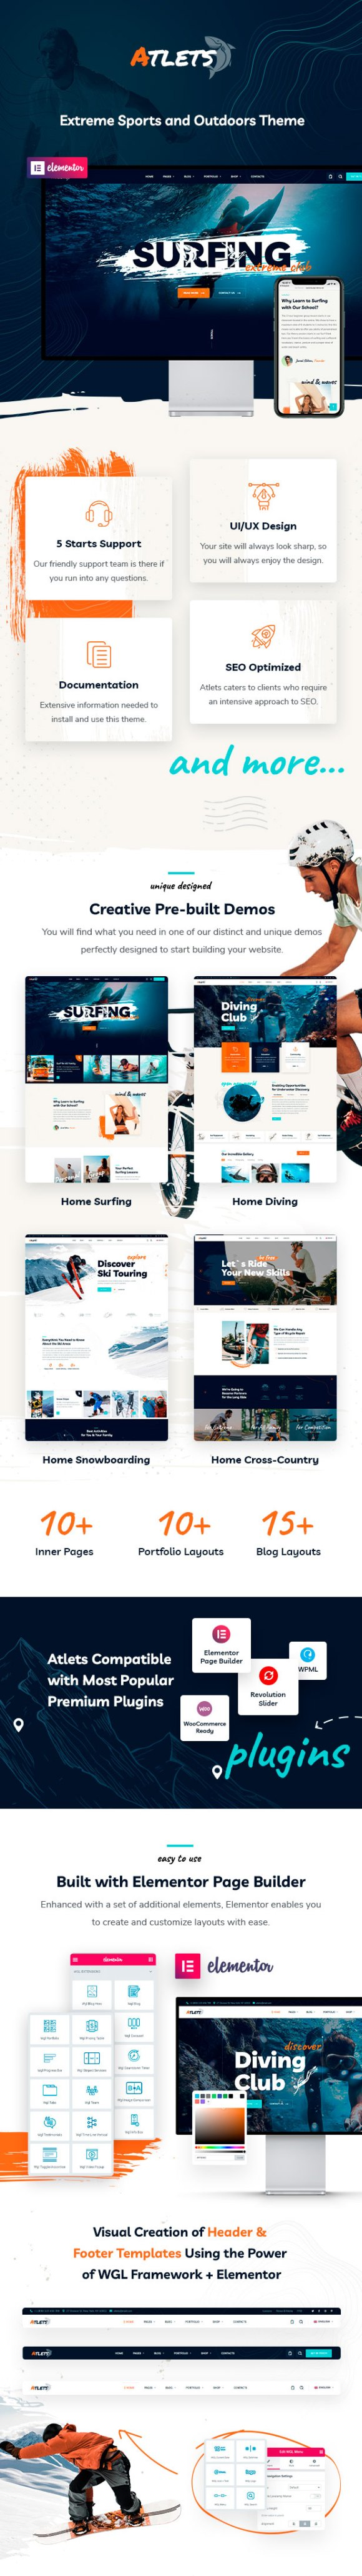 Atlets - Extreme and Outdoors WordPress Theme - 1